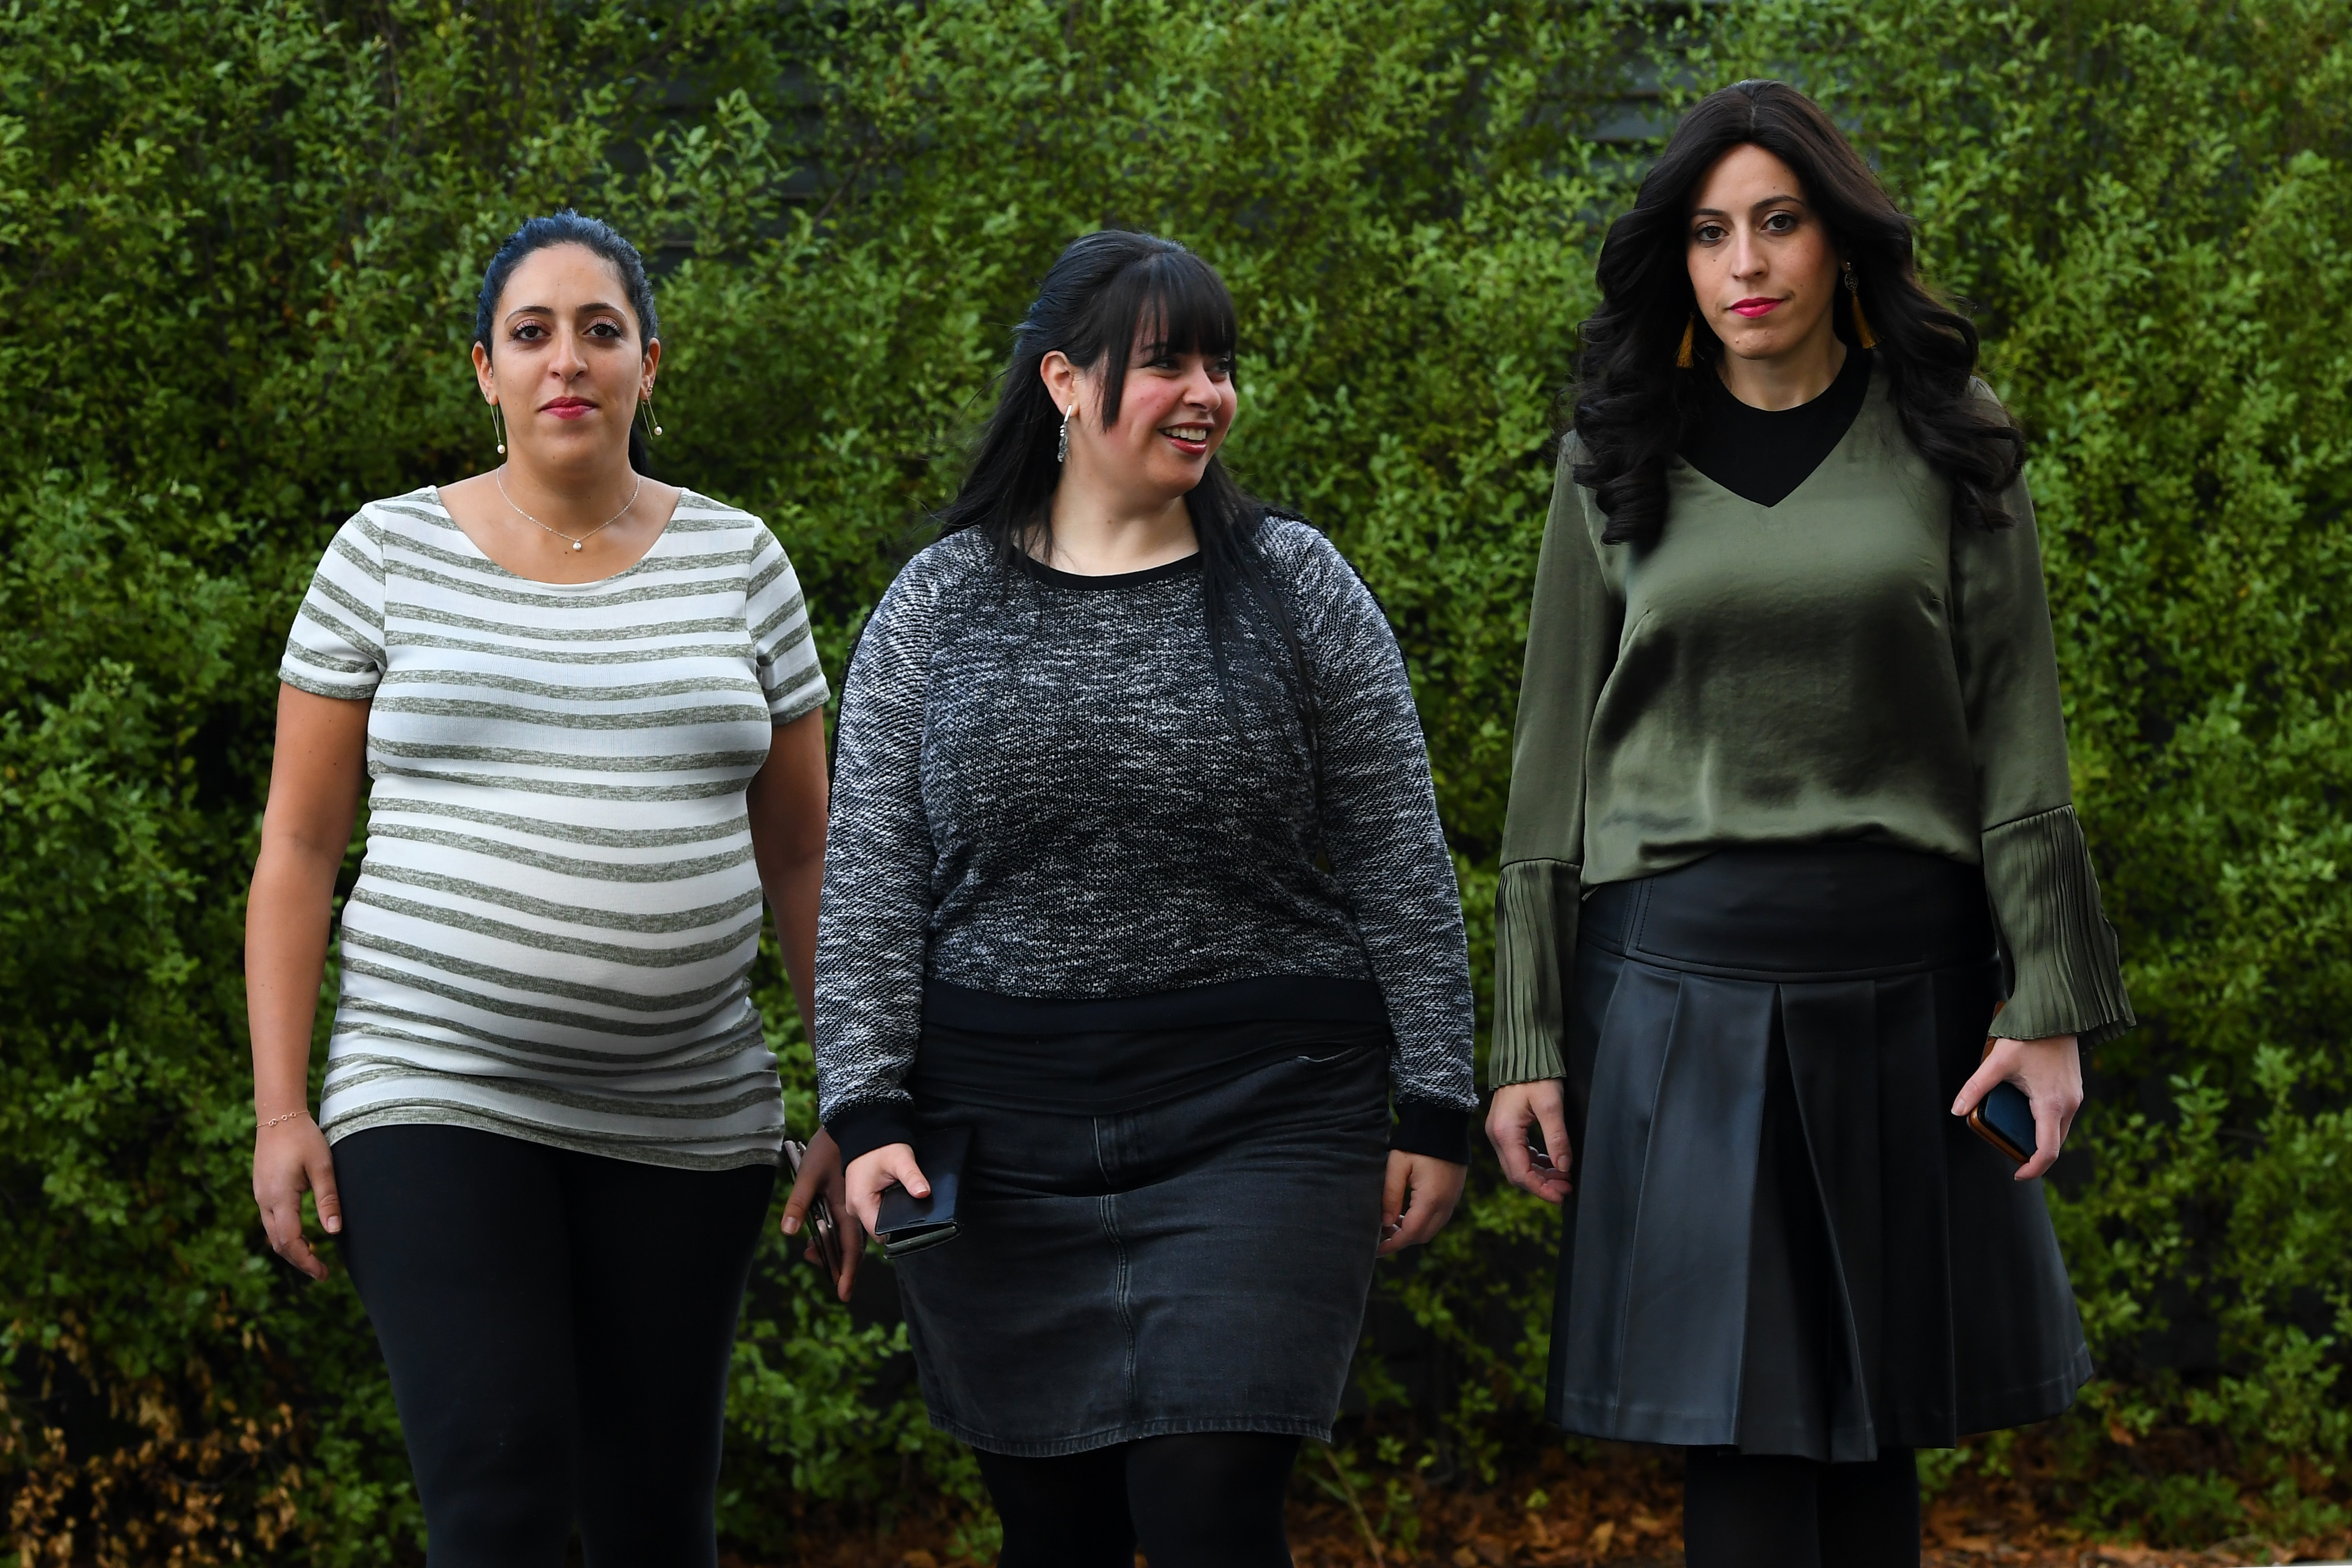 Sisters Elly Sapir, Dassi Erlich and Nicole Meyer say they are bruised but not broken by the battle to bring Malka Leifer to justice.